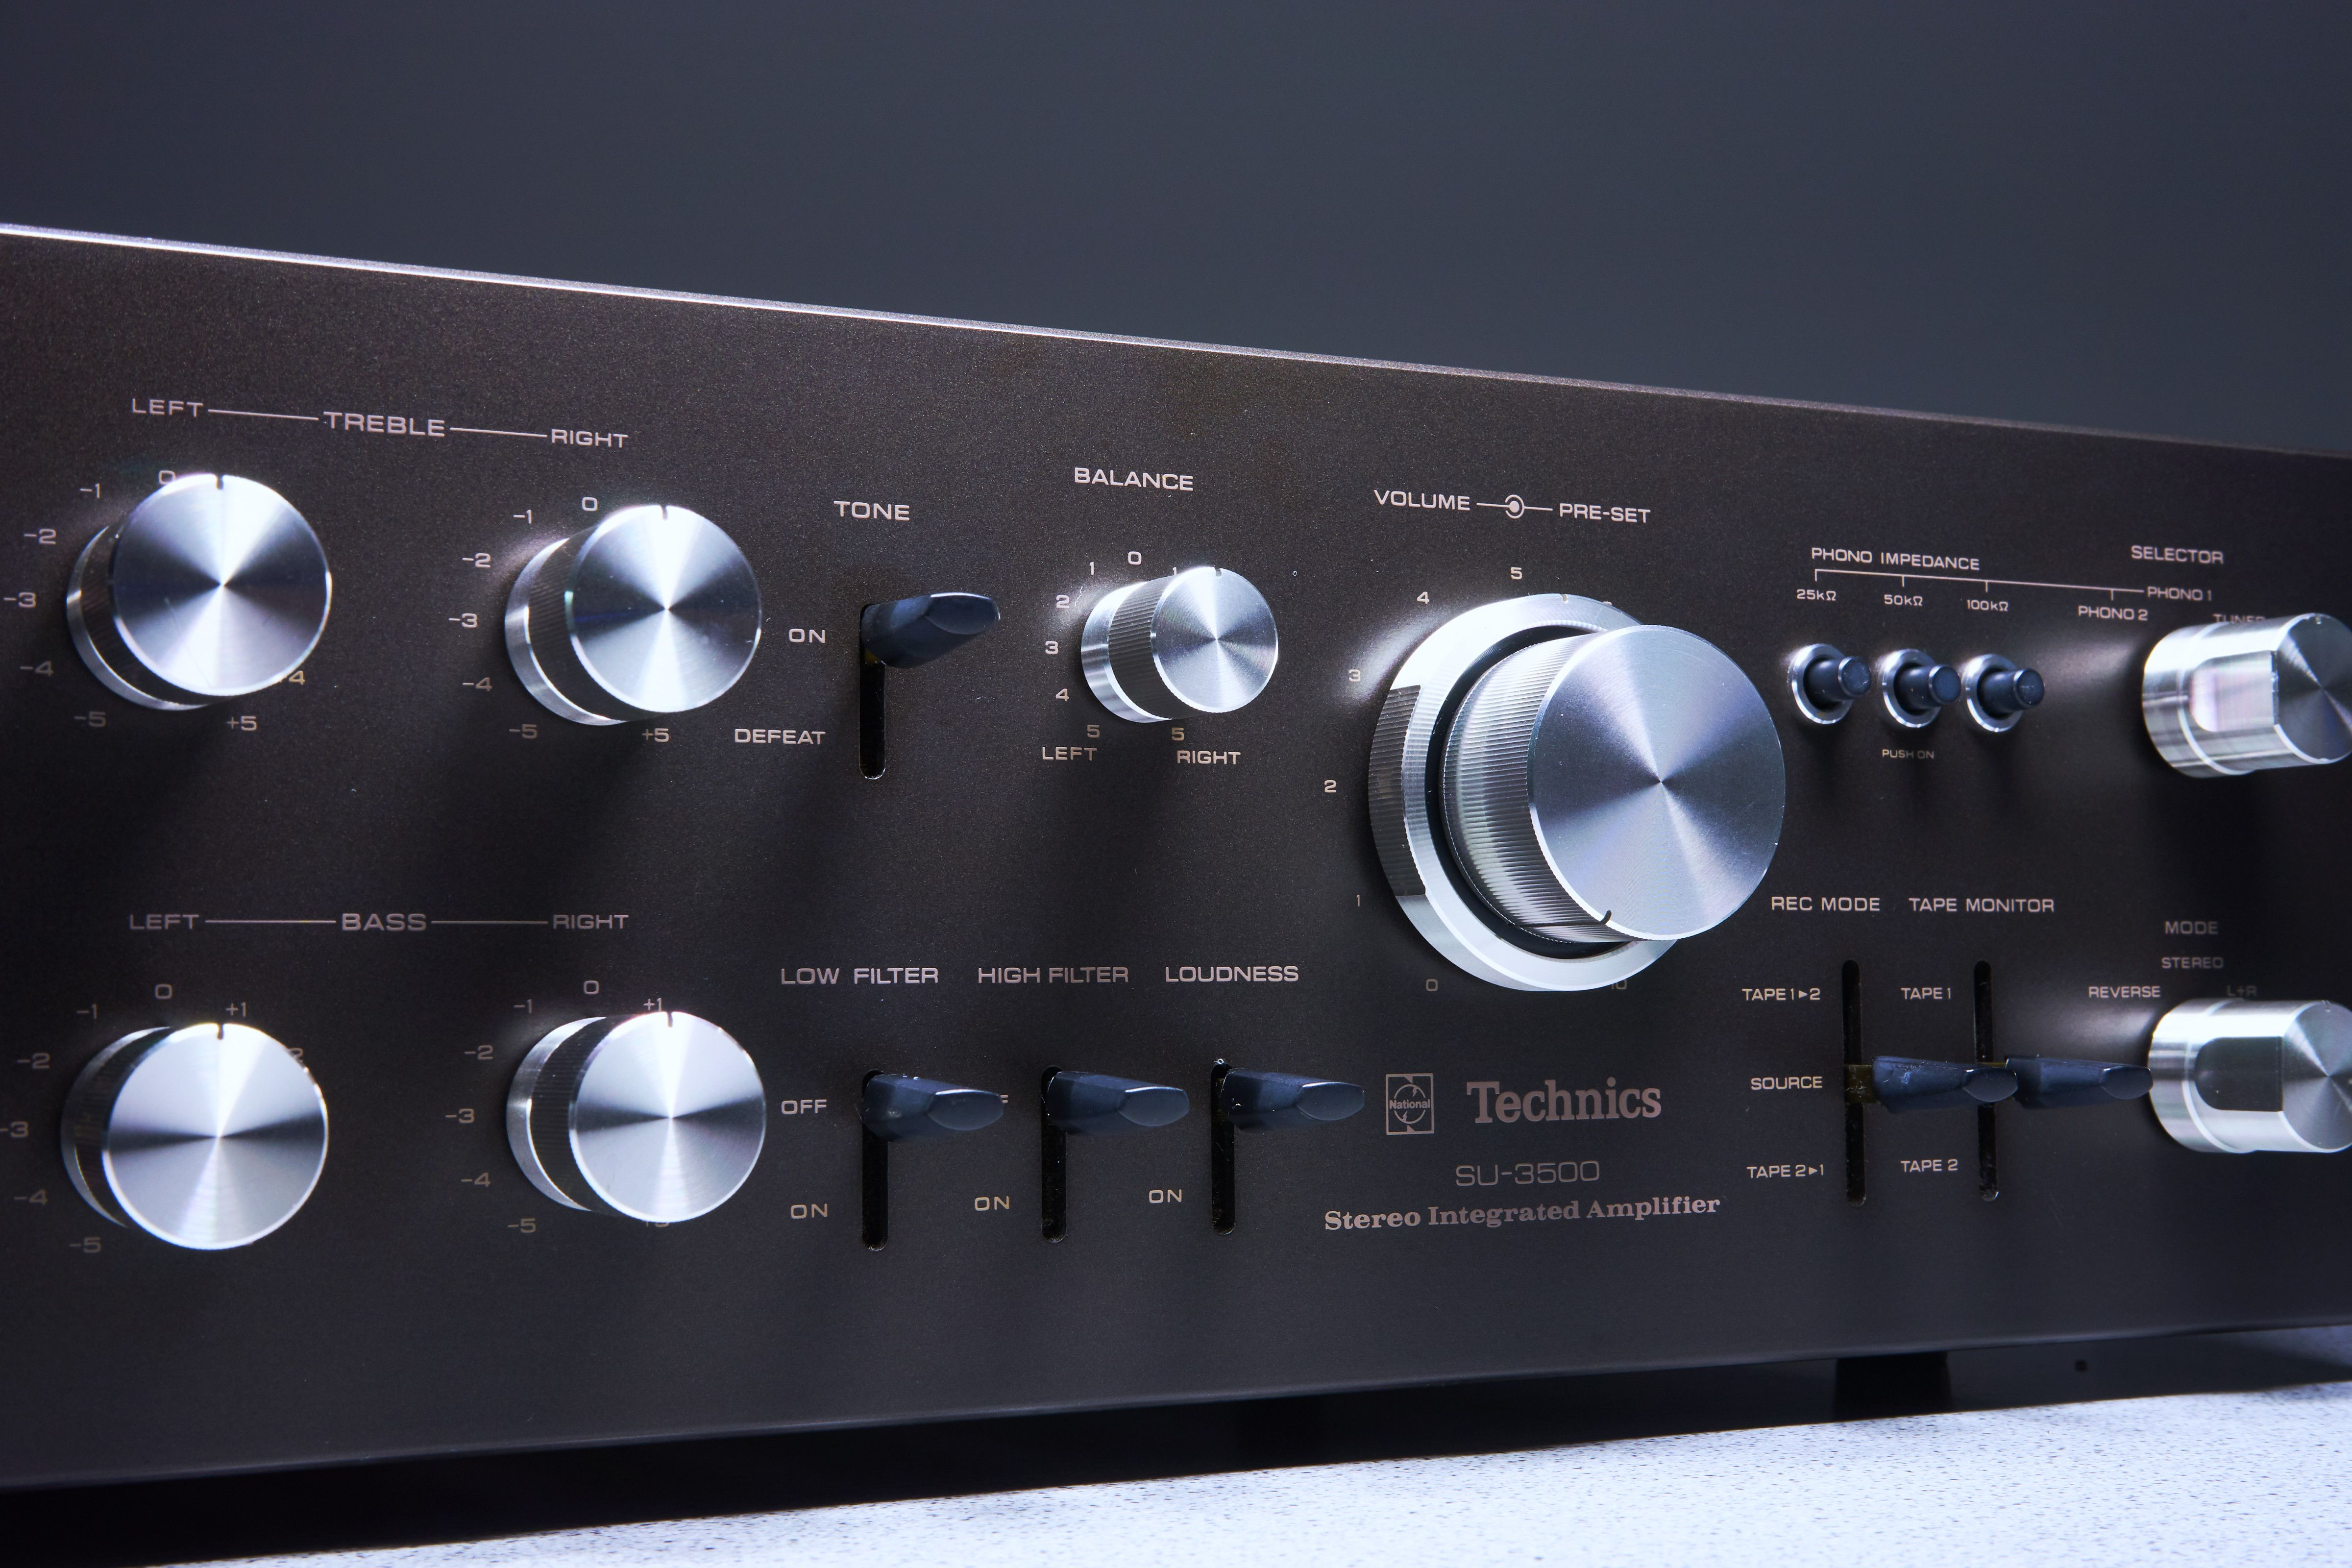 National Technics Su 3500 Stereo Amplifier Stereo Amplifier Amplifier Impedance Matching